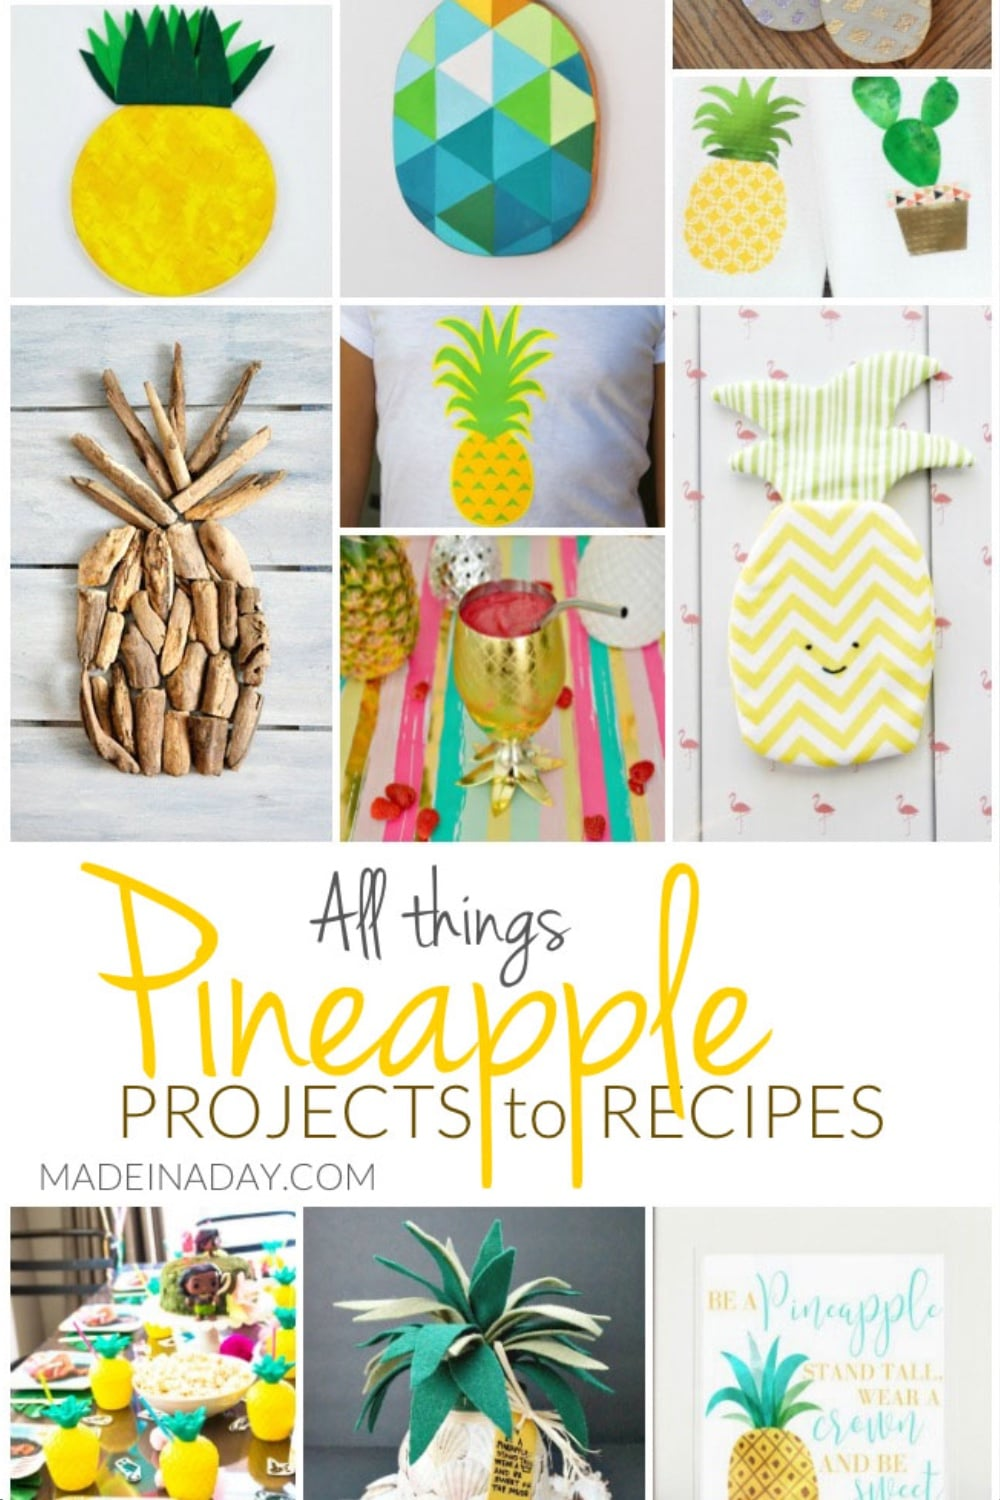 All Things Pineapple Projects to Recipes